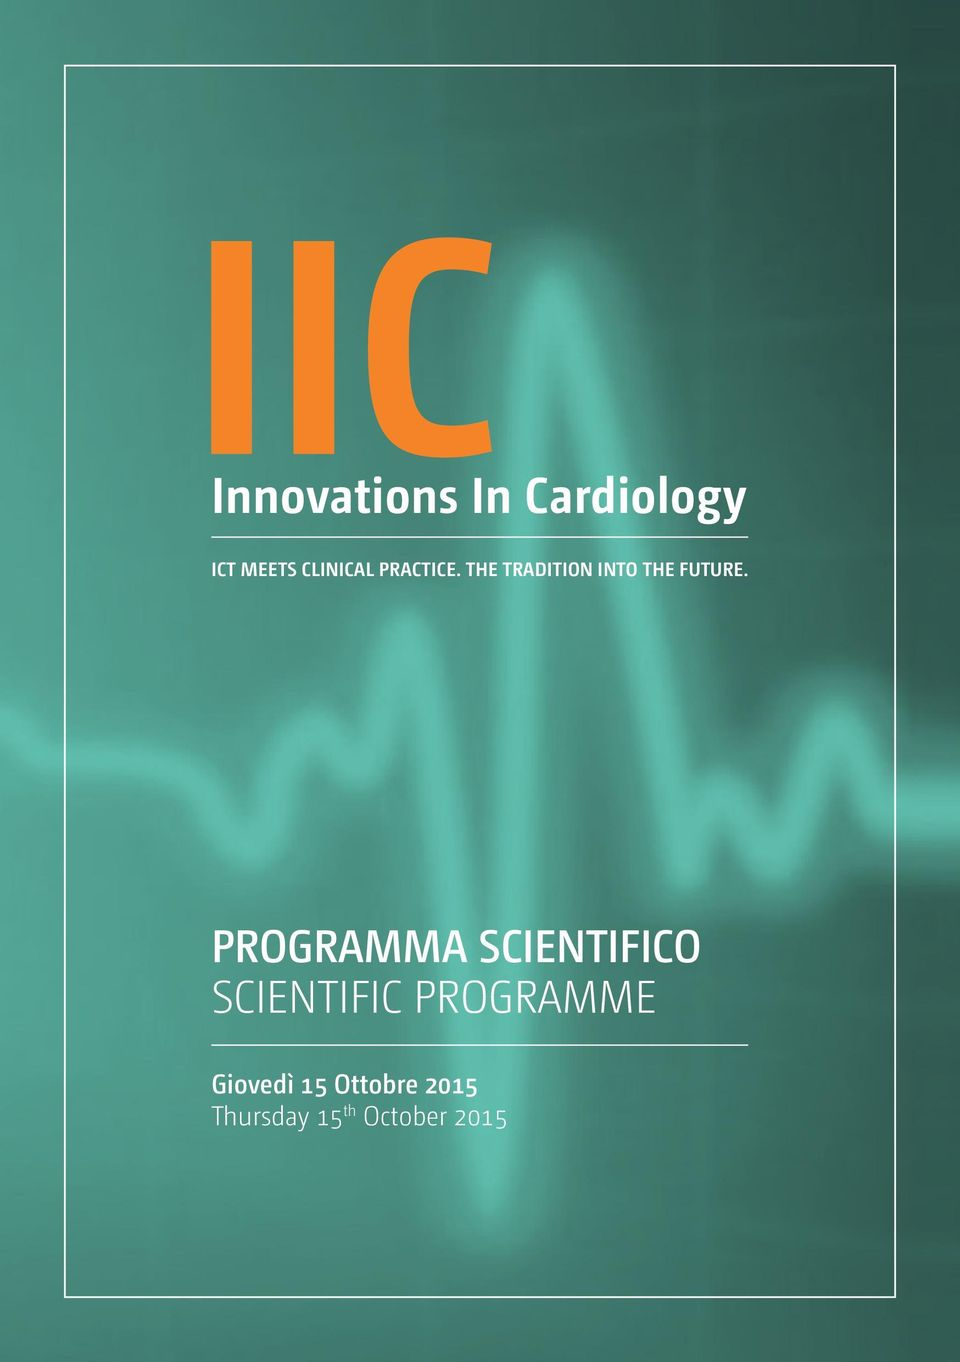 PROGRAMMA SCIENTIFICO SCIENTIFIC PROGRAMME